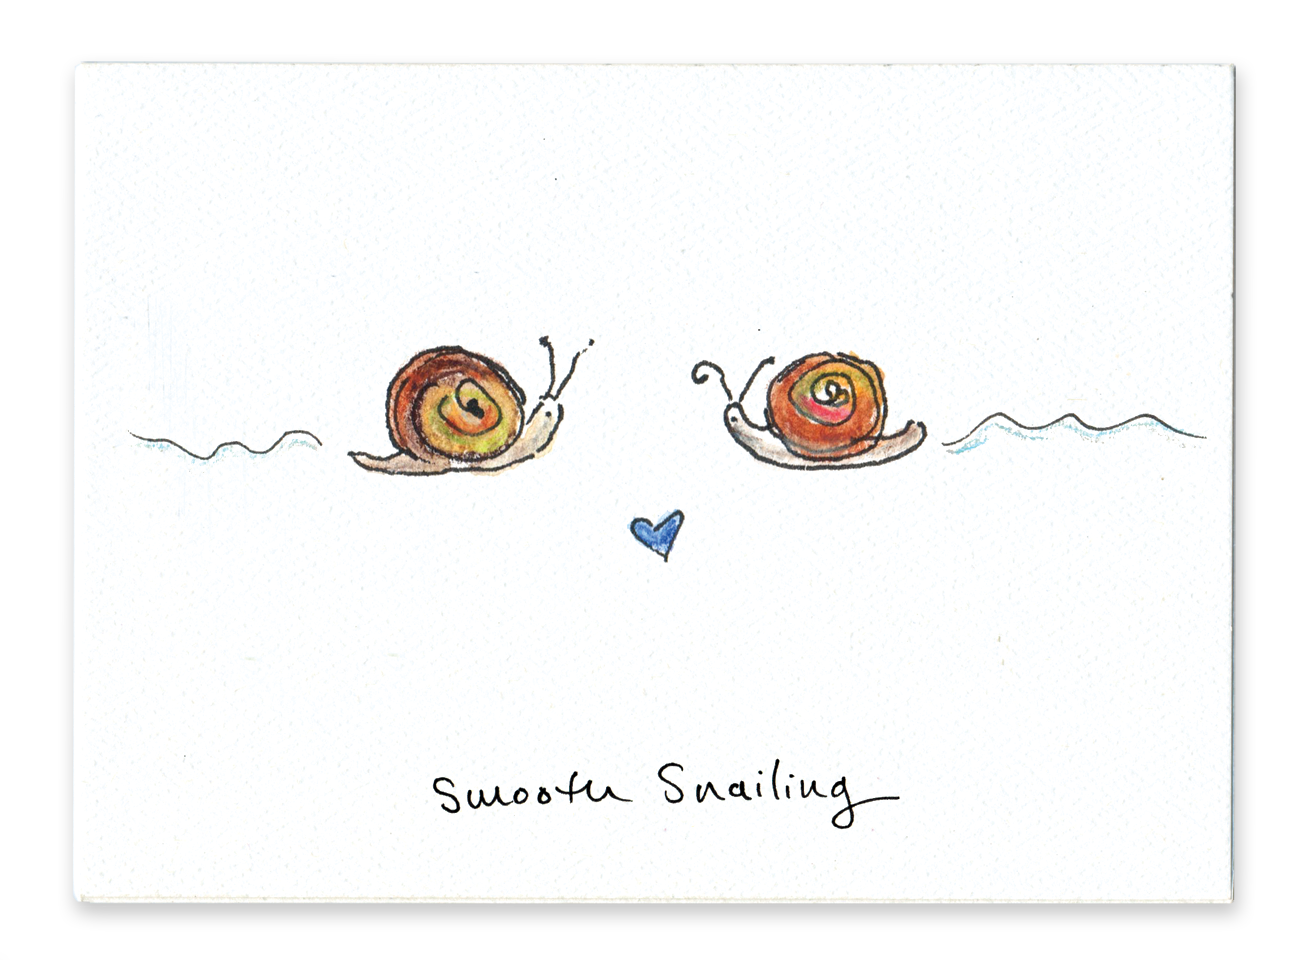 Smooth Snailing